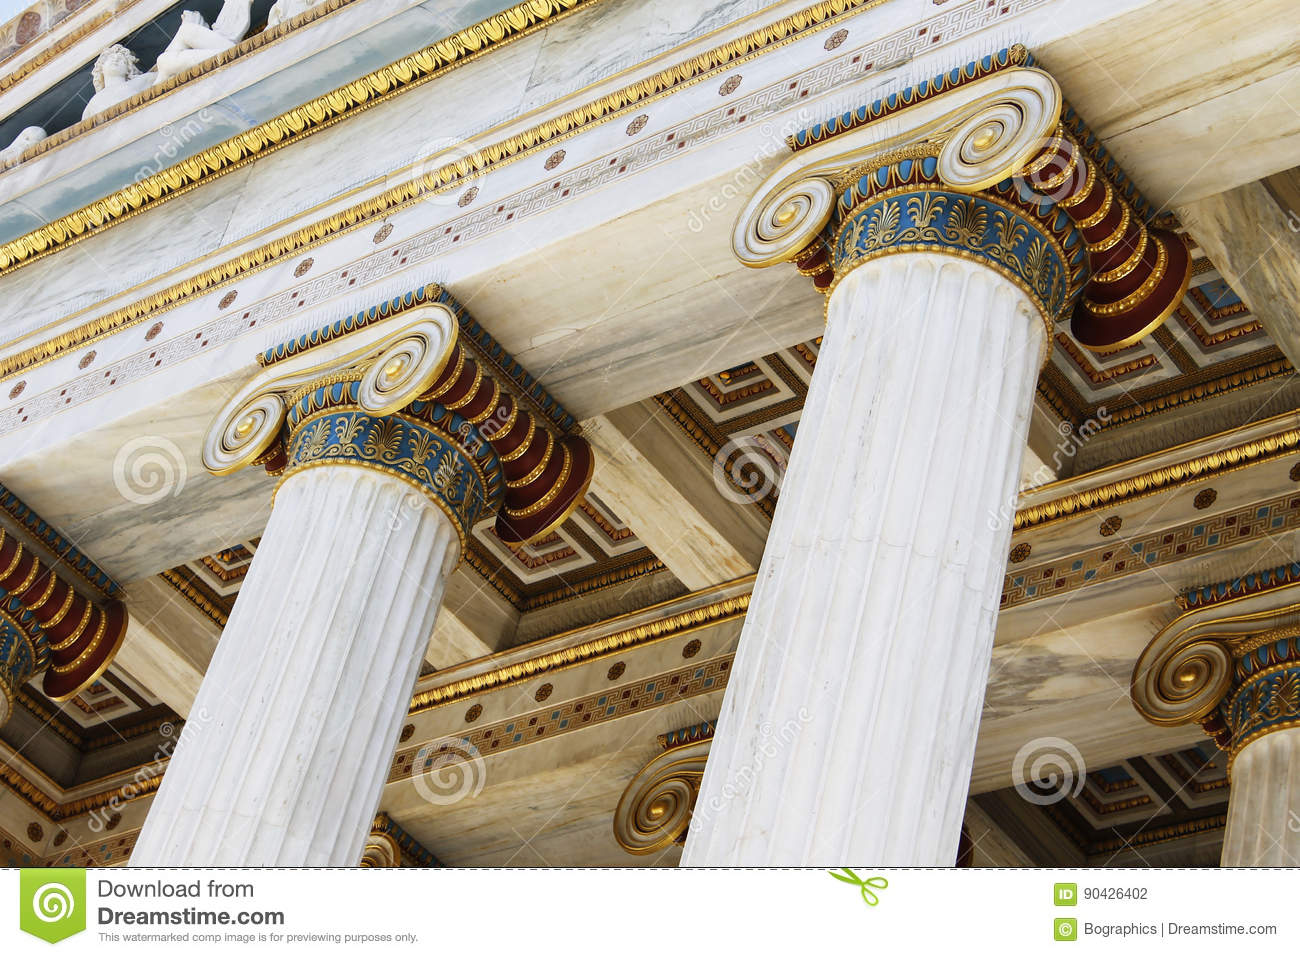 Greek ionic columns and ceiling